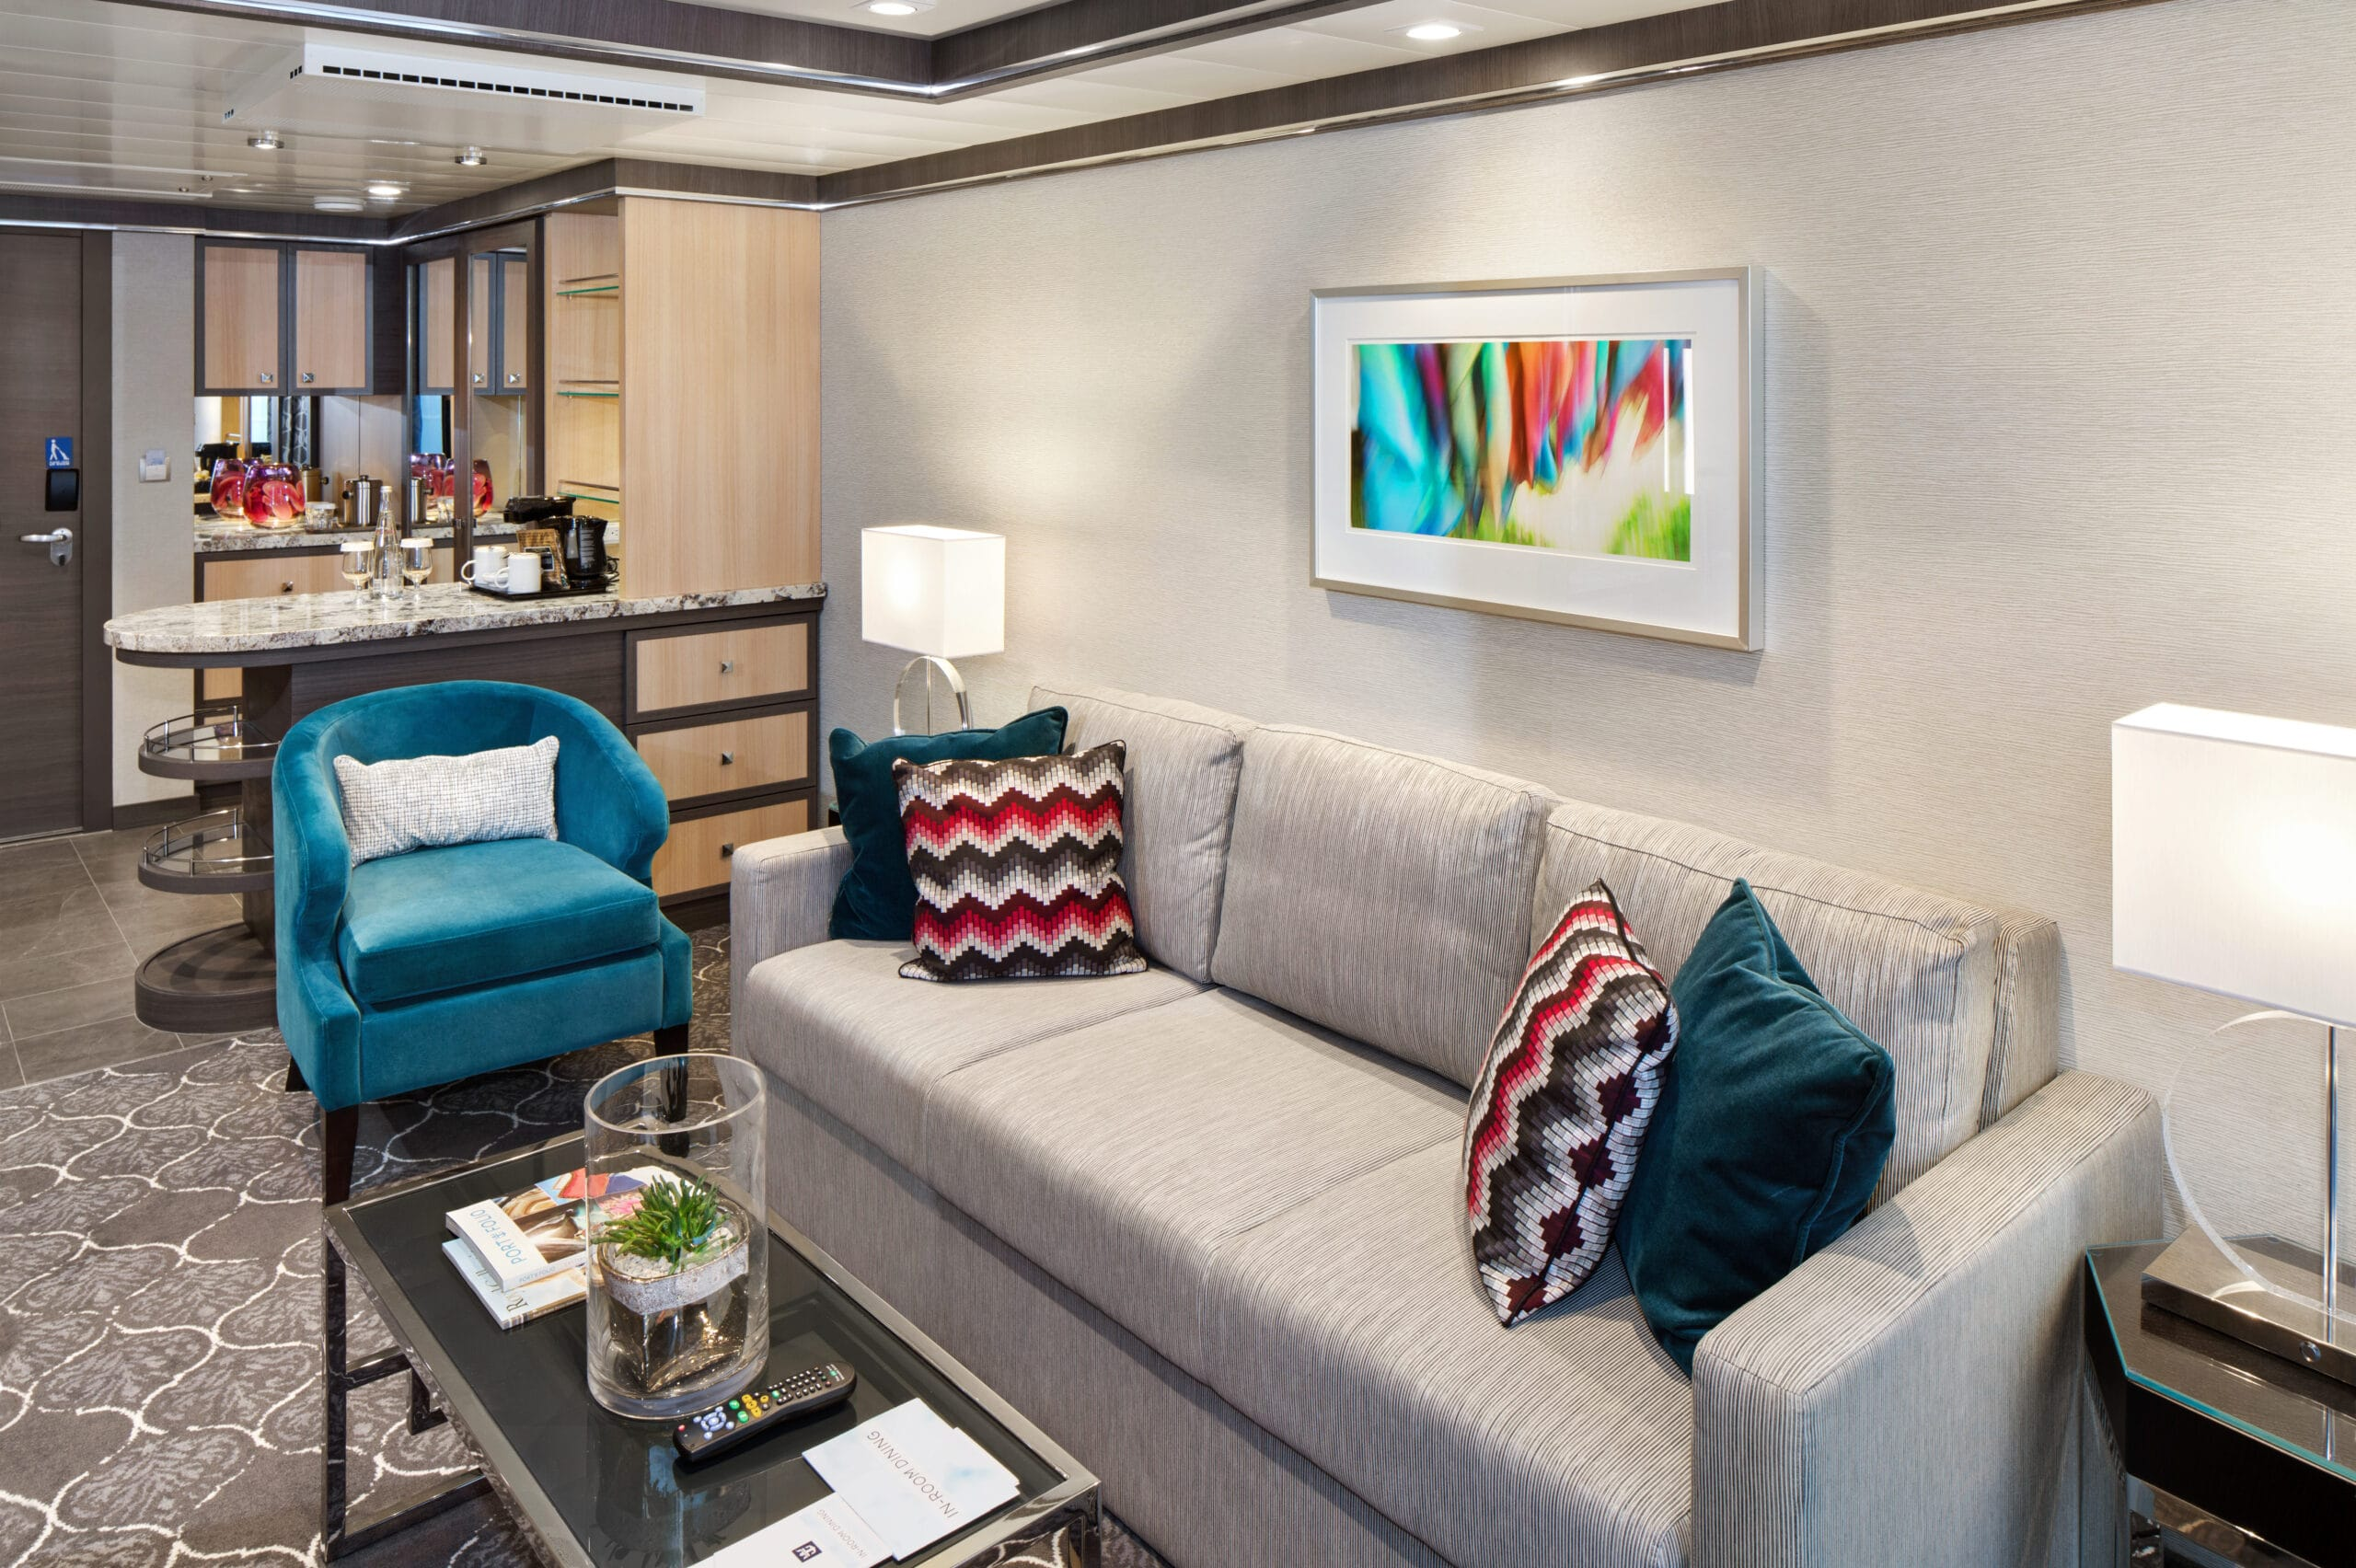 Royal-Caribbean-International-Harmony-of-the-Seas-Symphony-of-the-seas-schip-cruiseschip-categorie-GT-Grand-Suite-two-bedroom